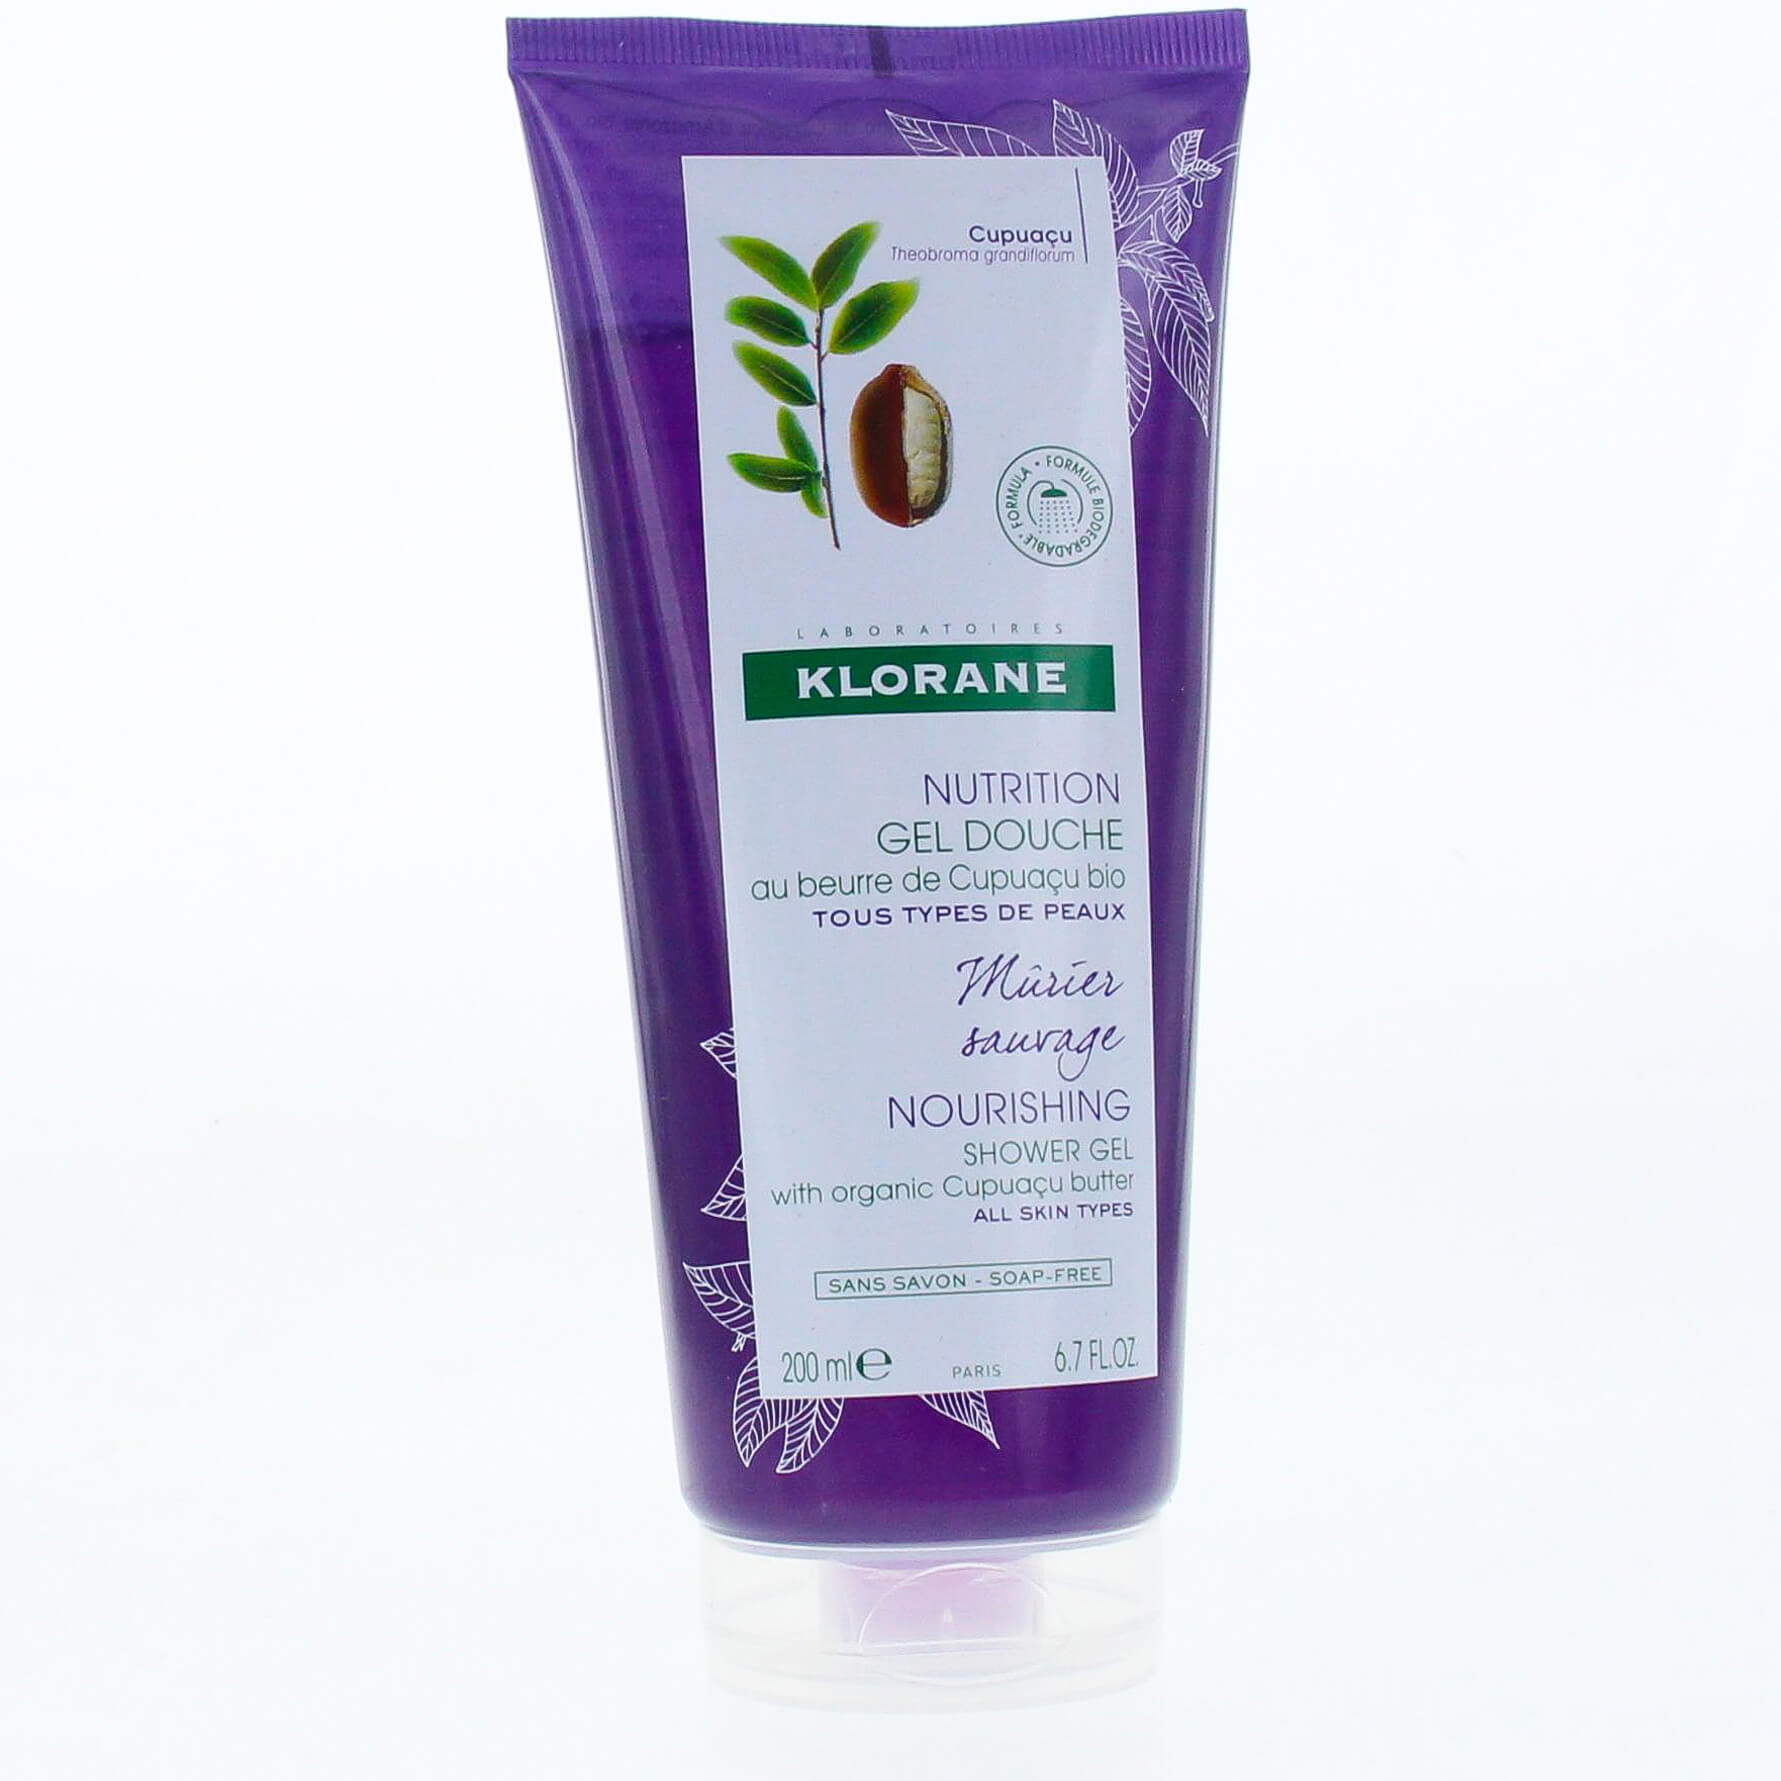 Klorane Nourishing Shower Gel with Organic Cupuacu Butter & Wild Blackberry Bush Απαλό Αφρόλουτρο με Άρωμα Άγριο Μούρο 200ml